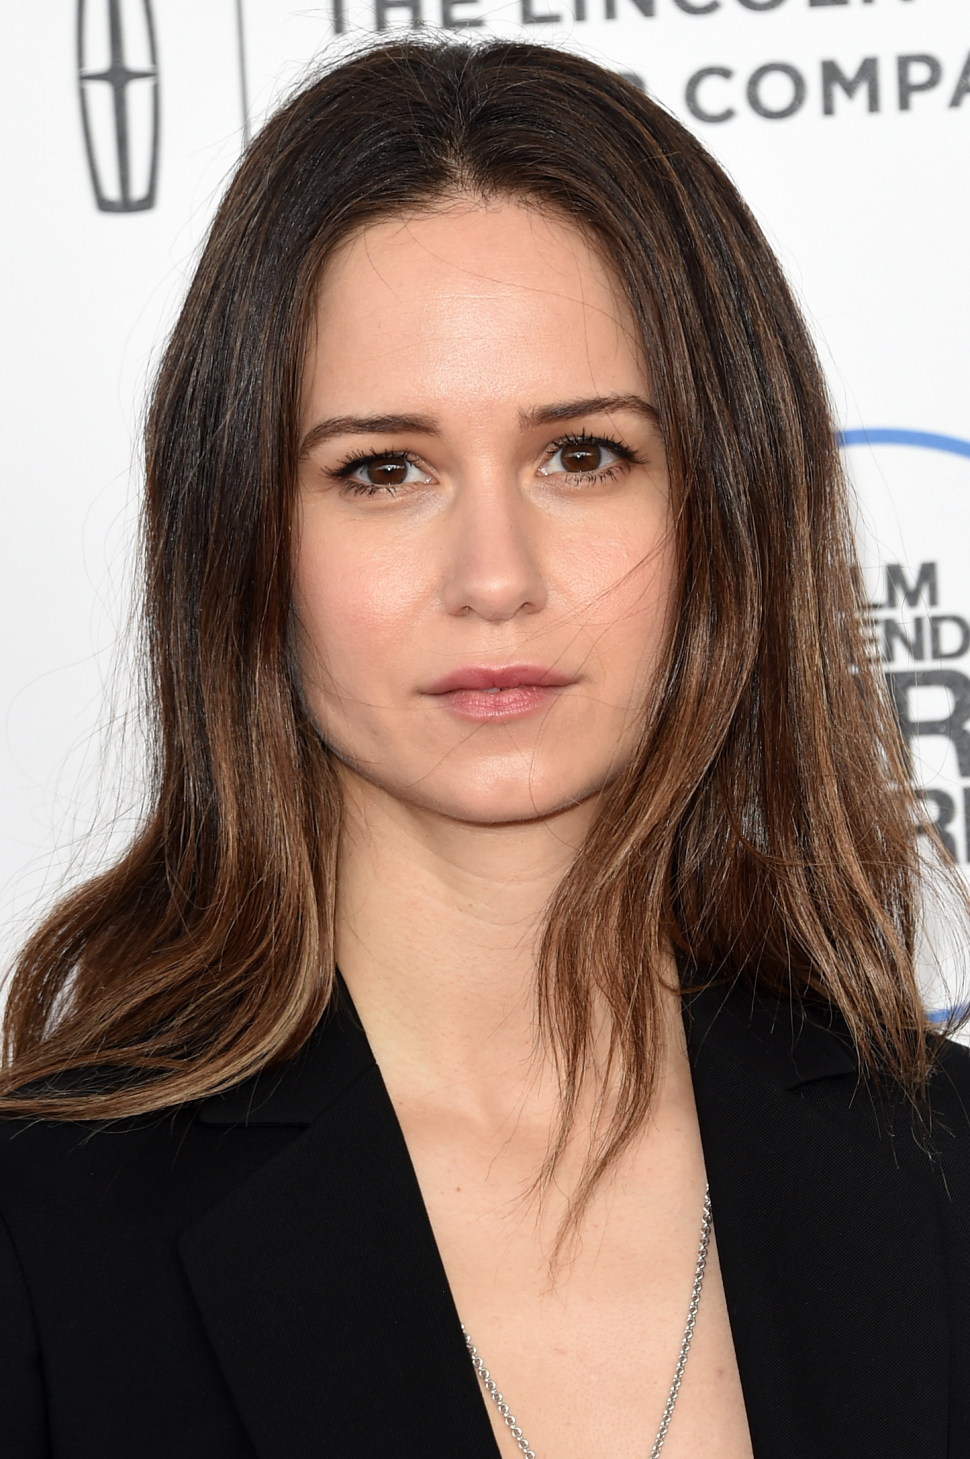 Katherine Waterston naked (46 foto and video), Topless, Leaked, Twitter, in bikini 2019